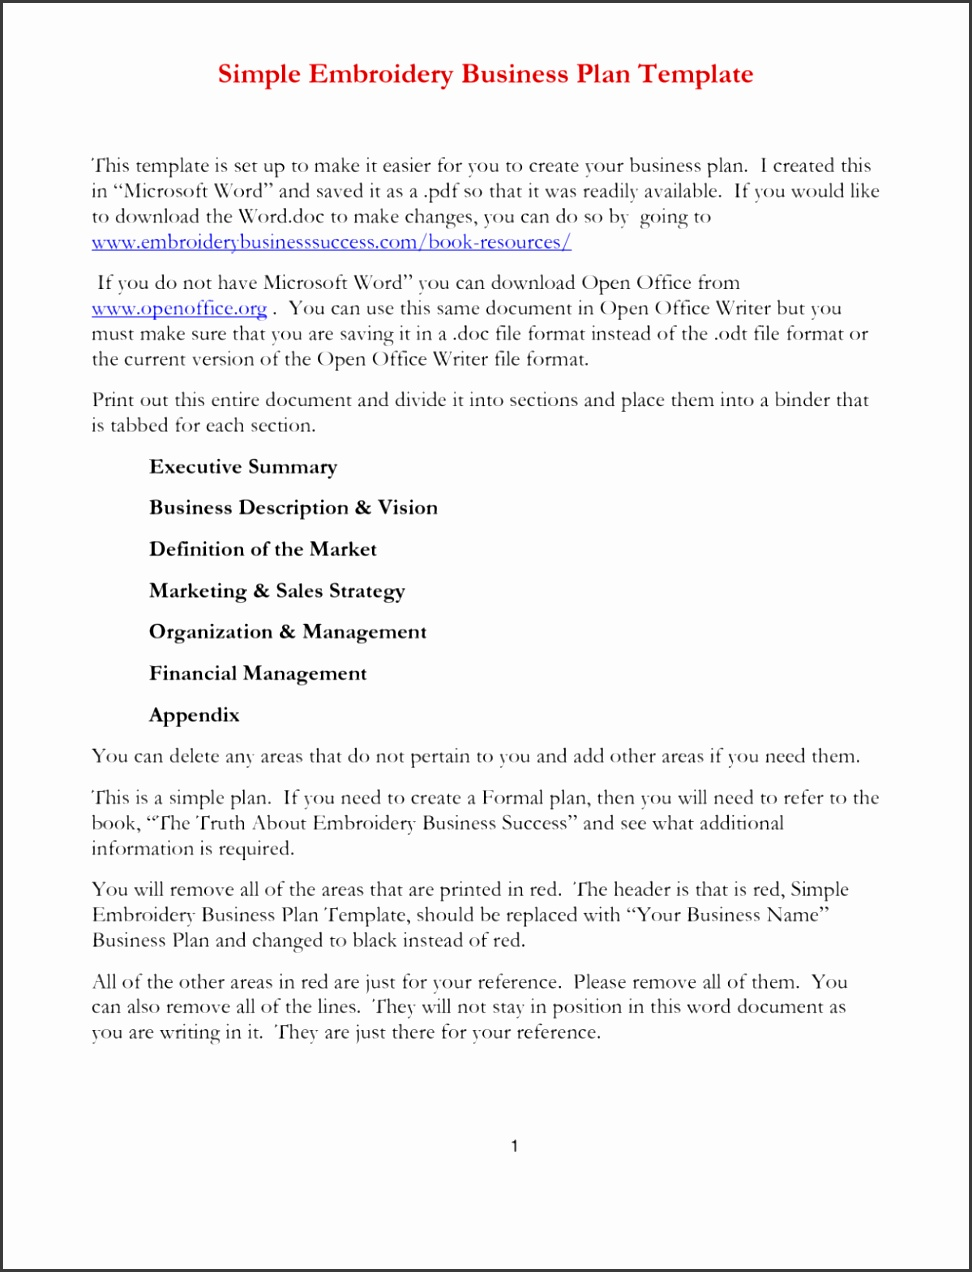 Free Business Plan Template Cateringny Sales For Pdf Catering Free Businessan Template Catering pany For Pdf